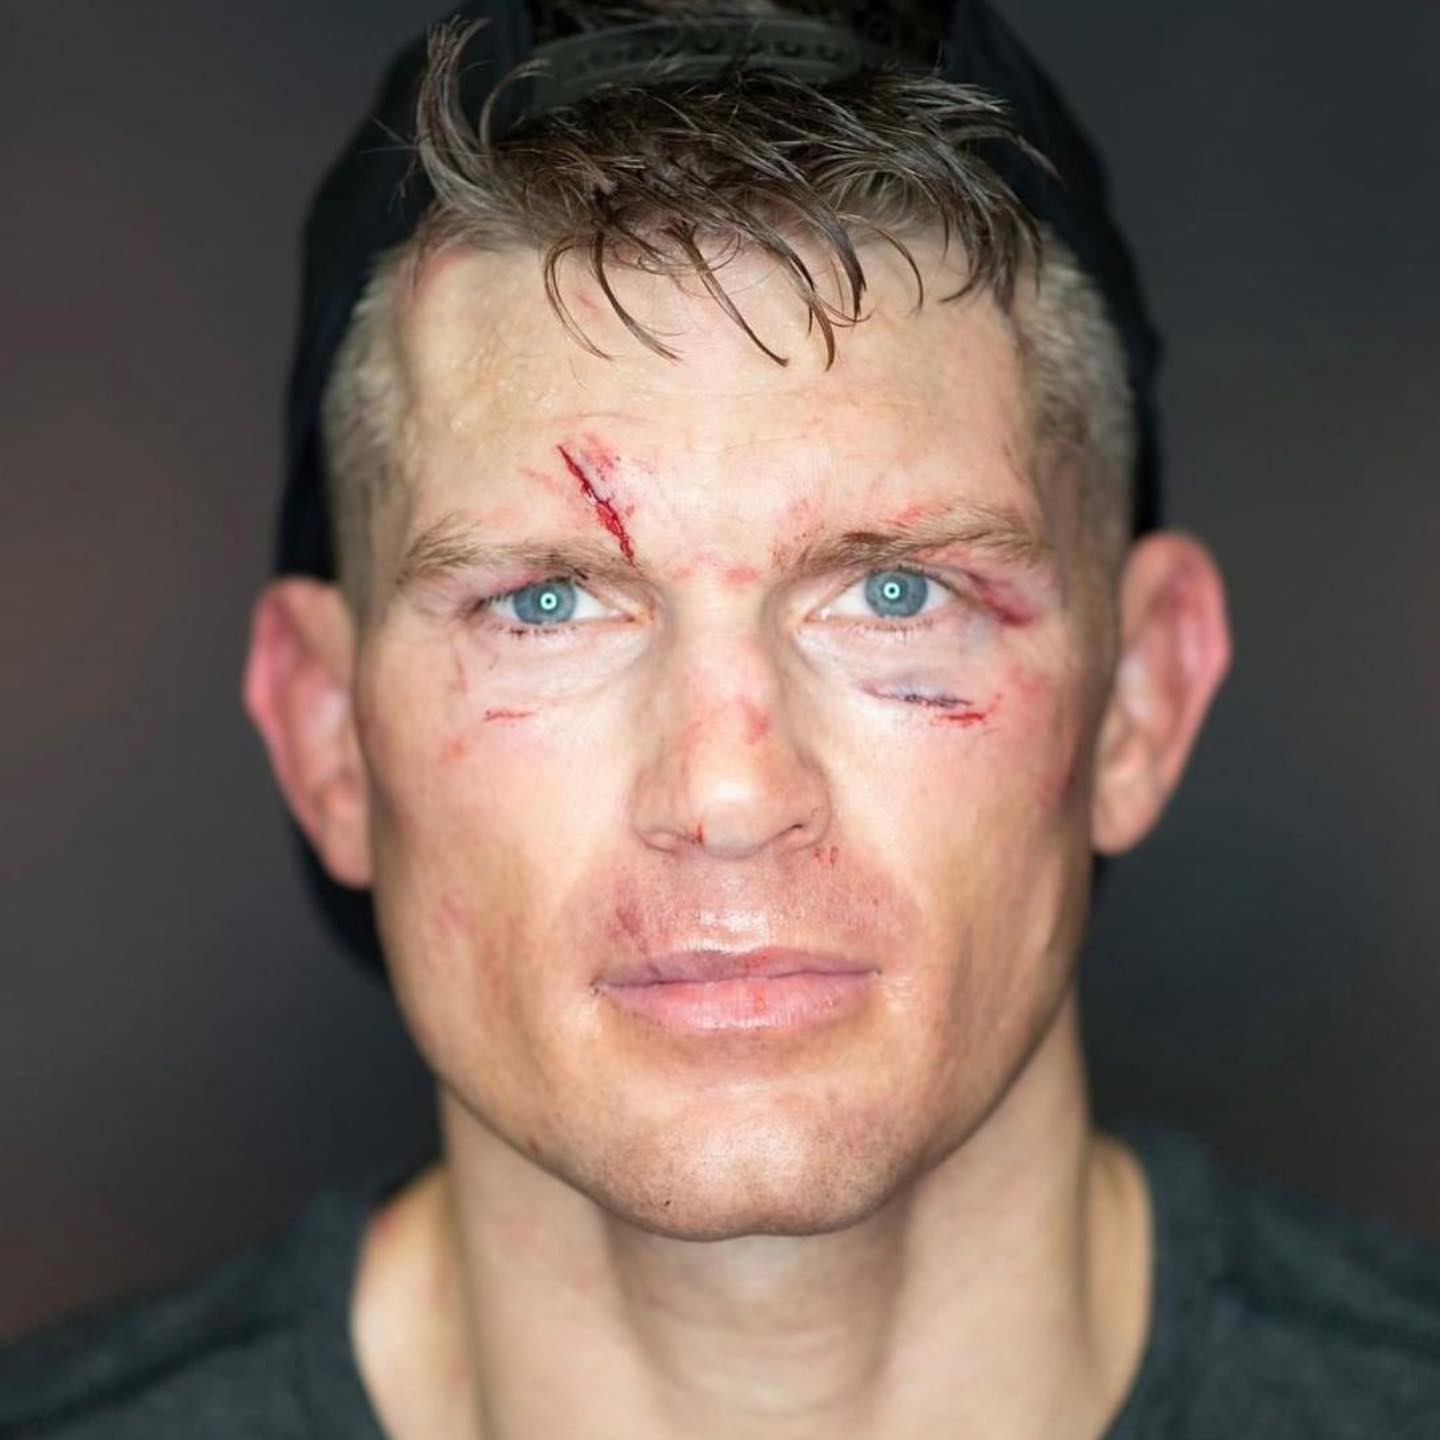 Wonderboy Cool Pic - MMA Fight Coverage - From his FB page